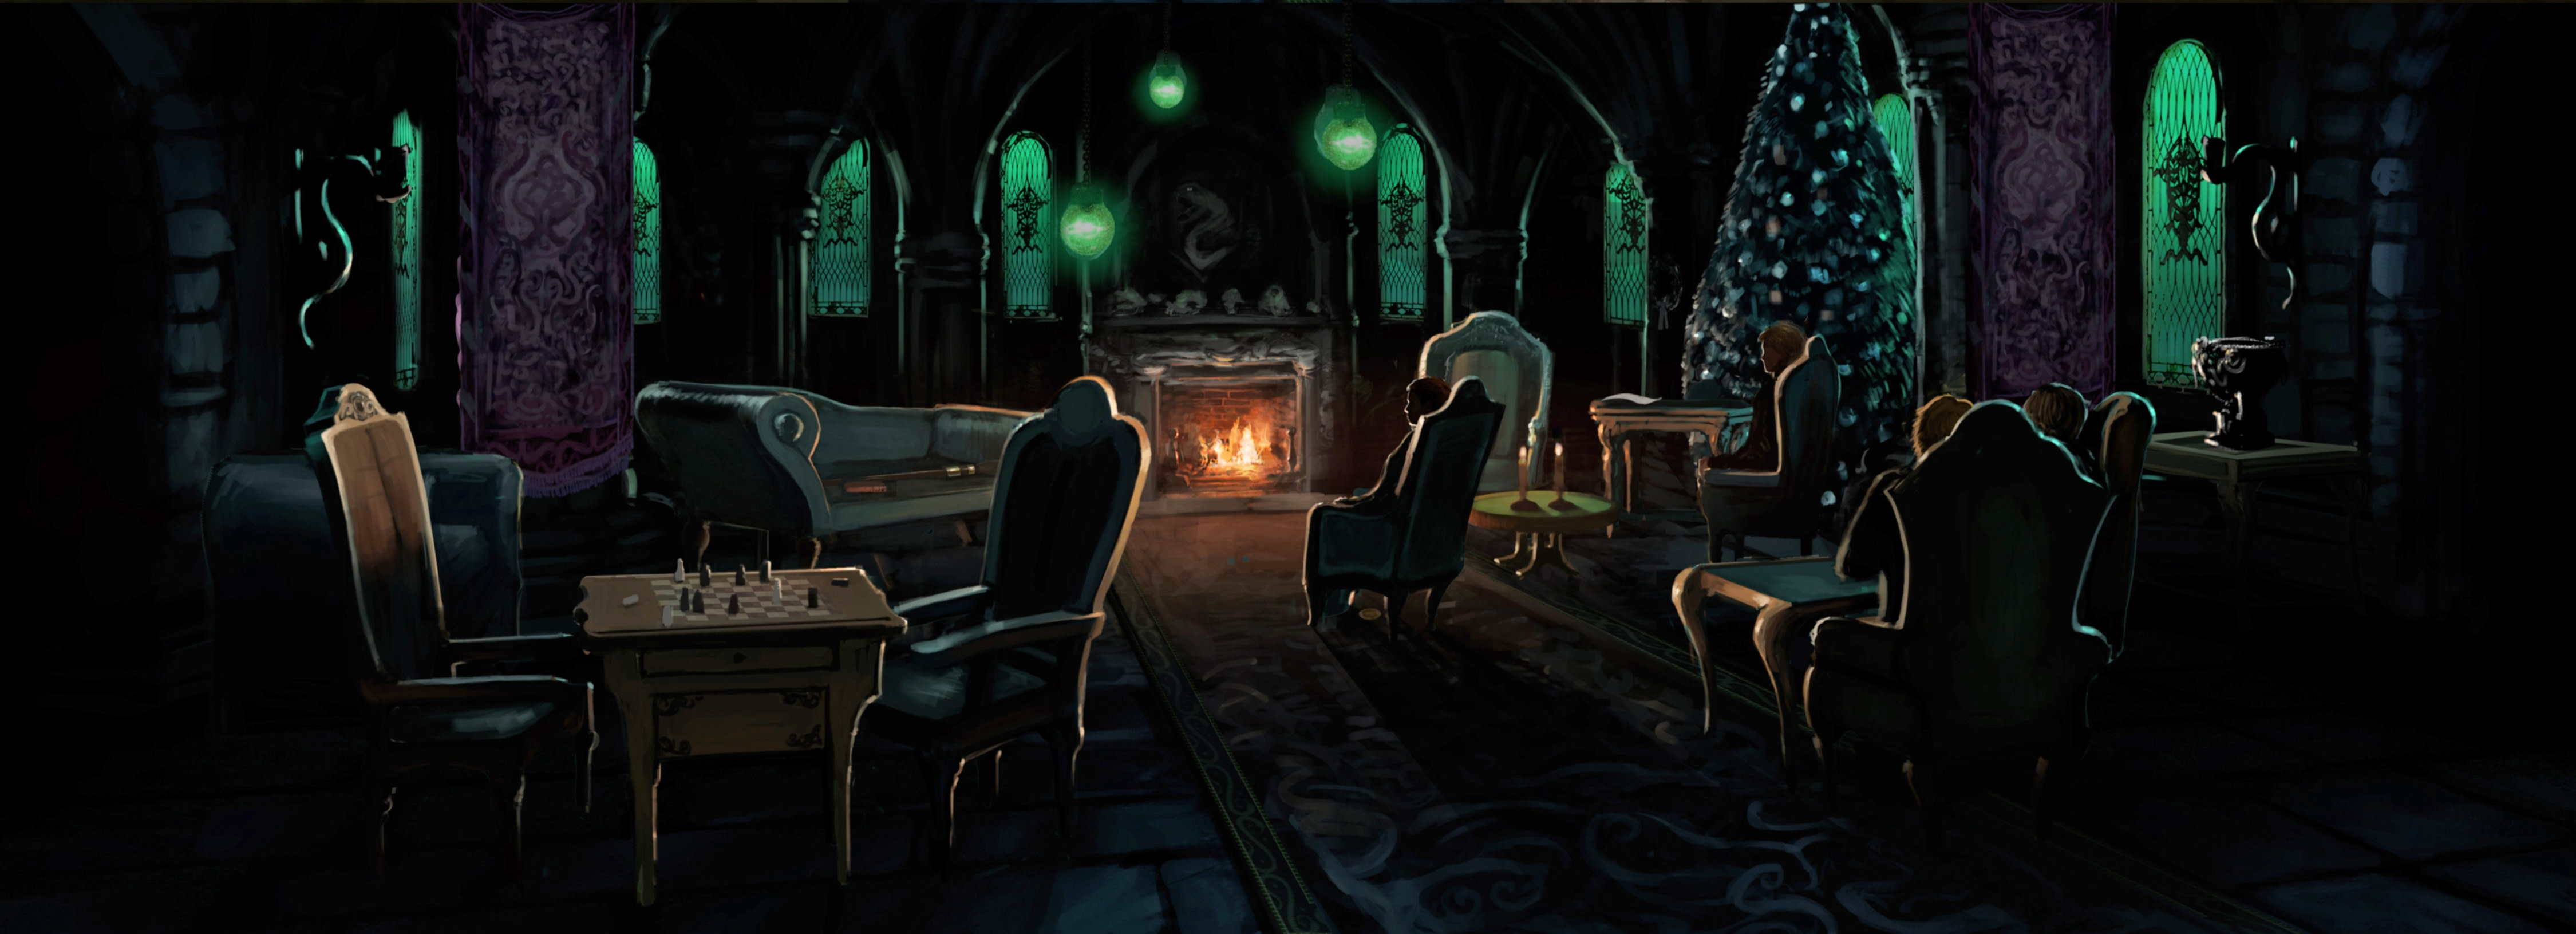 SlytherinCommonRoom PM B2C12M3 SlytherinCommonRoomWithDracoMalfoy Moment